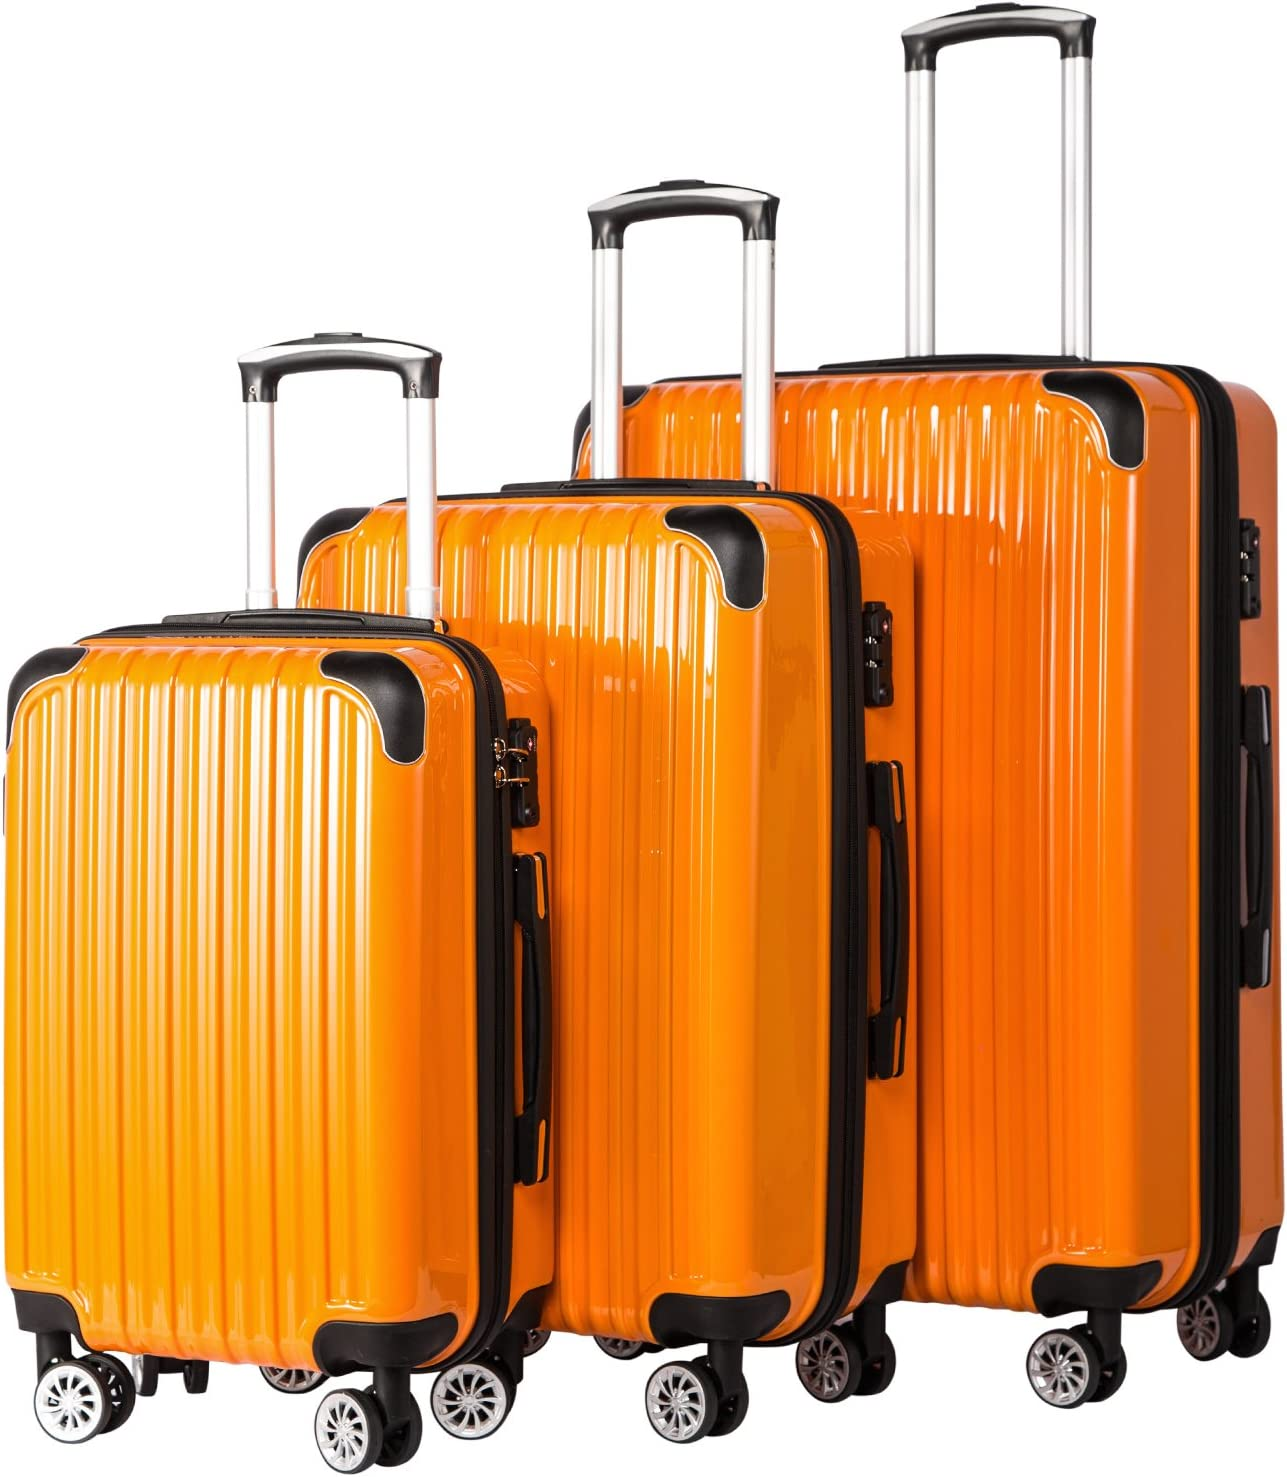 Coolife Luggage Expandable 3 Piece Sets PC+ABS Spinner Suitcase 20 inch 24 inch 28 inch (orange)